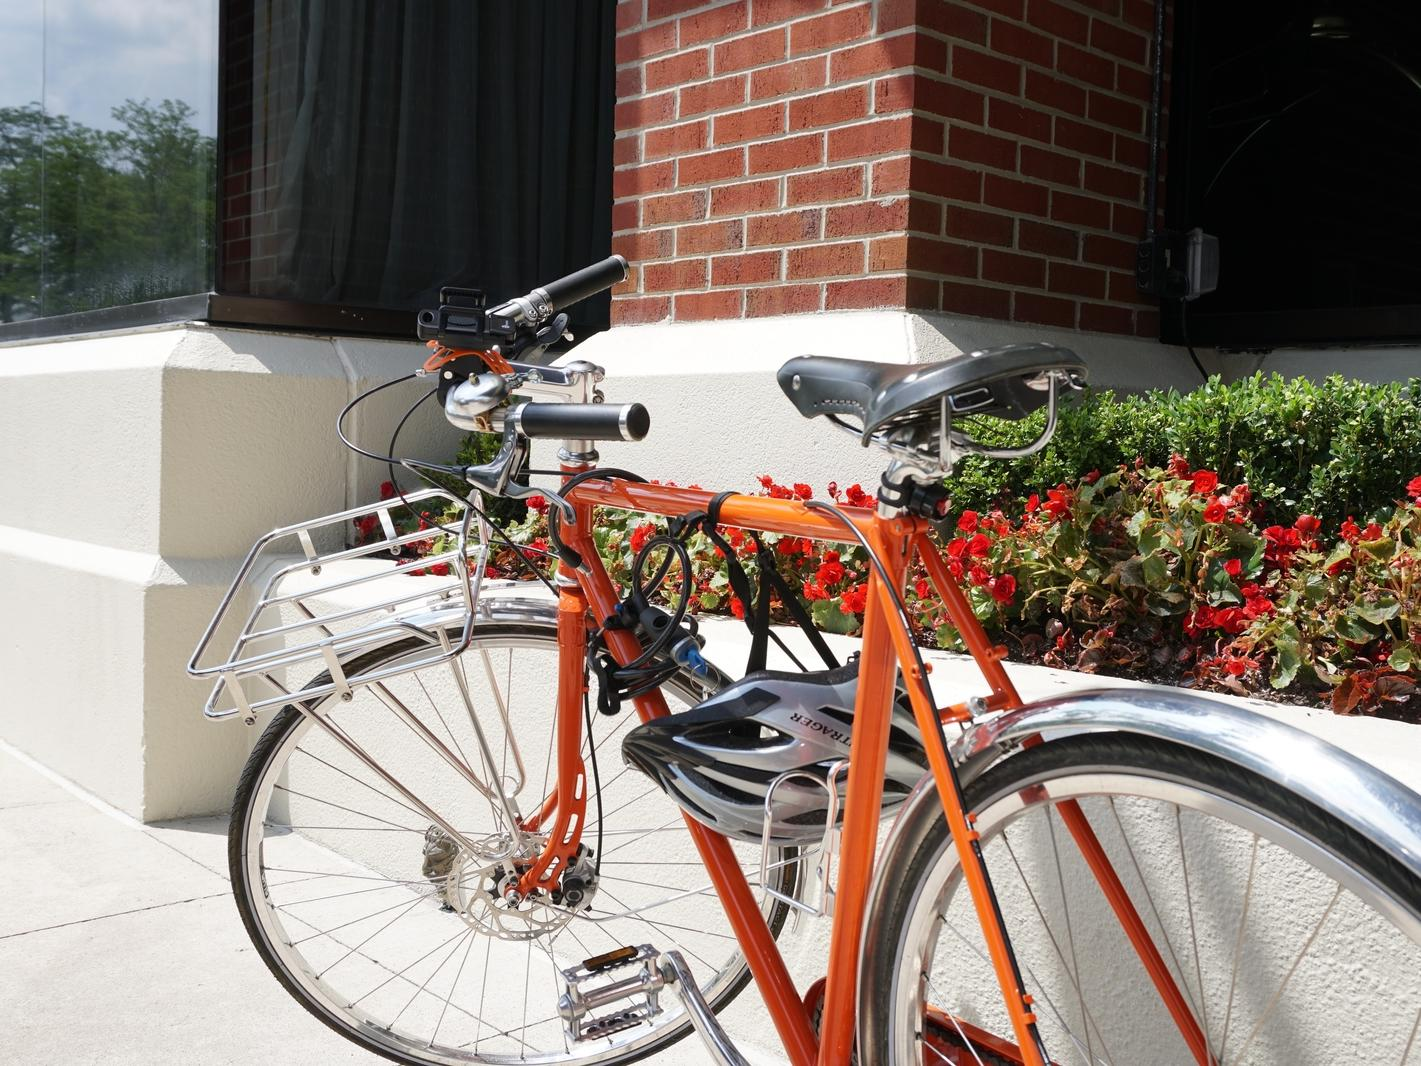 A red bicycle on a sidewalk